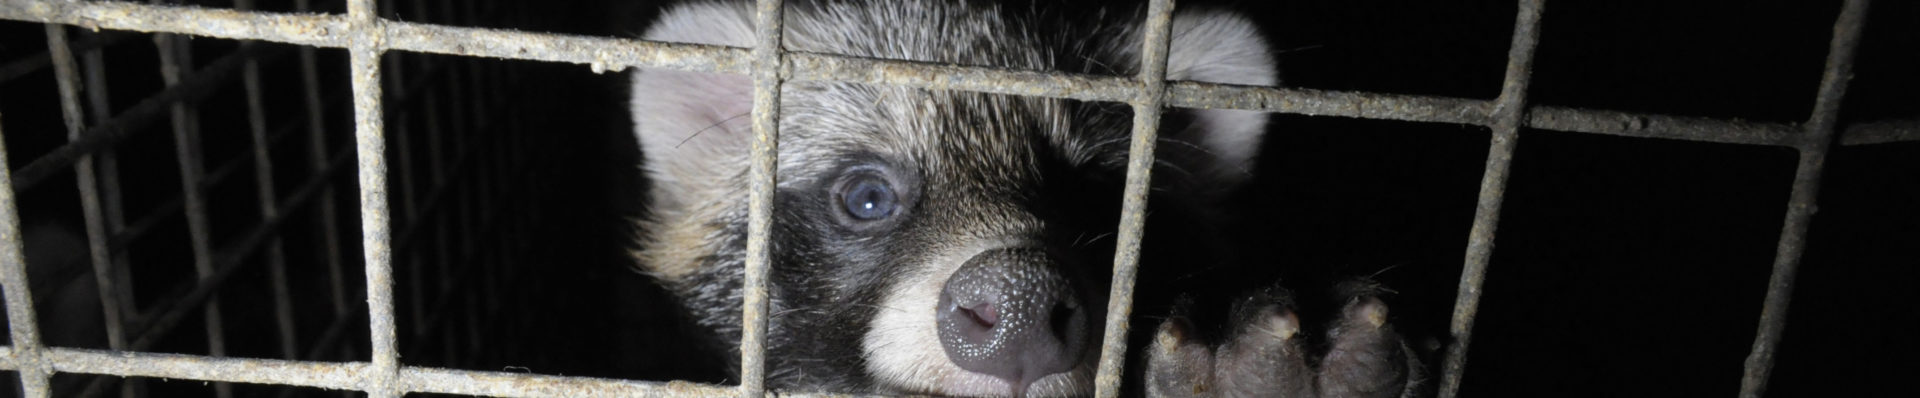 Prada Targeted by Animal Protection Organizations Worldwide over use of Fur